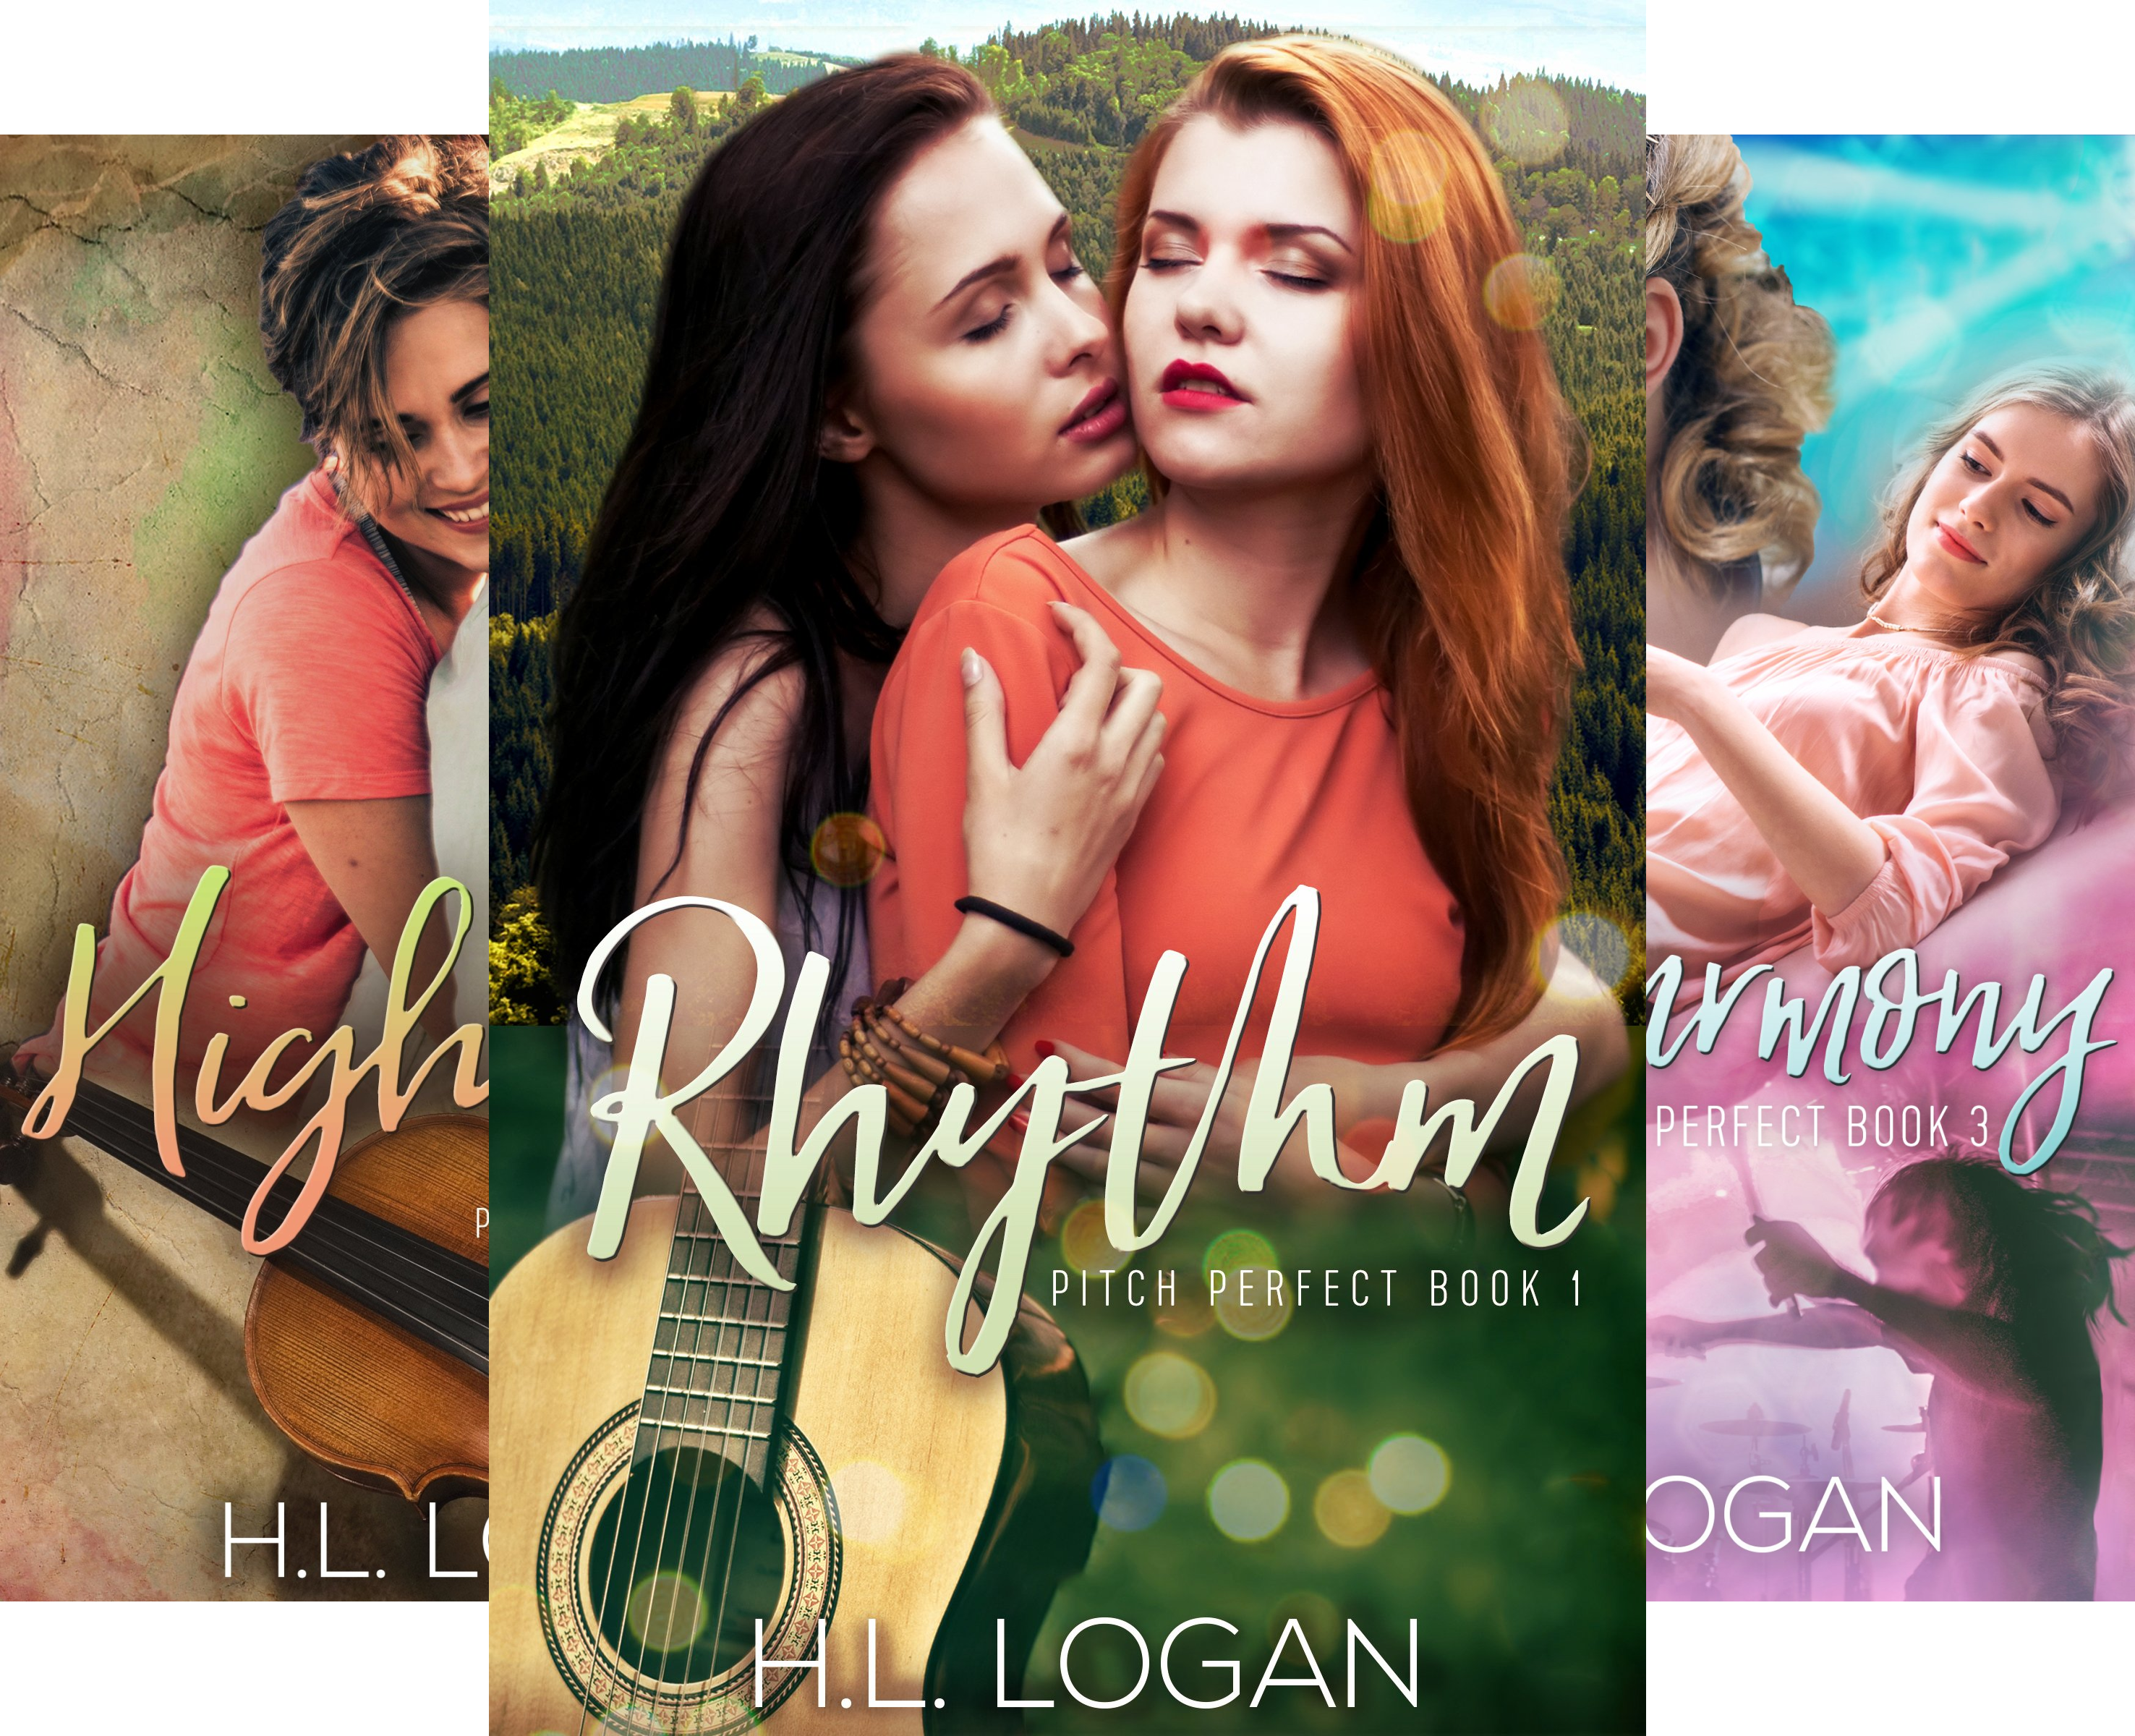 Pitch Perfect (3 Book Series)